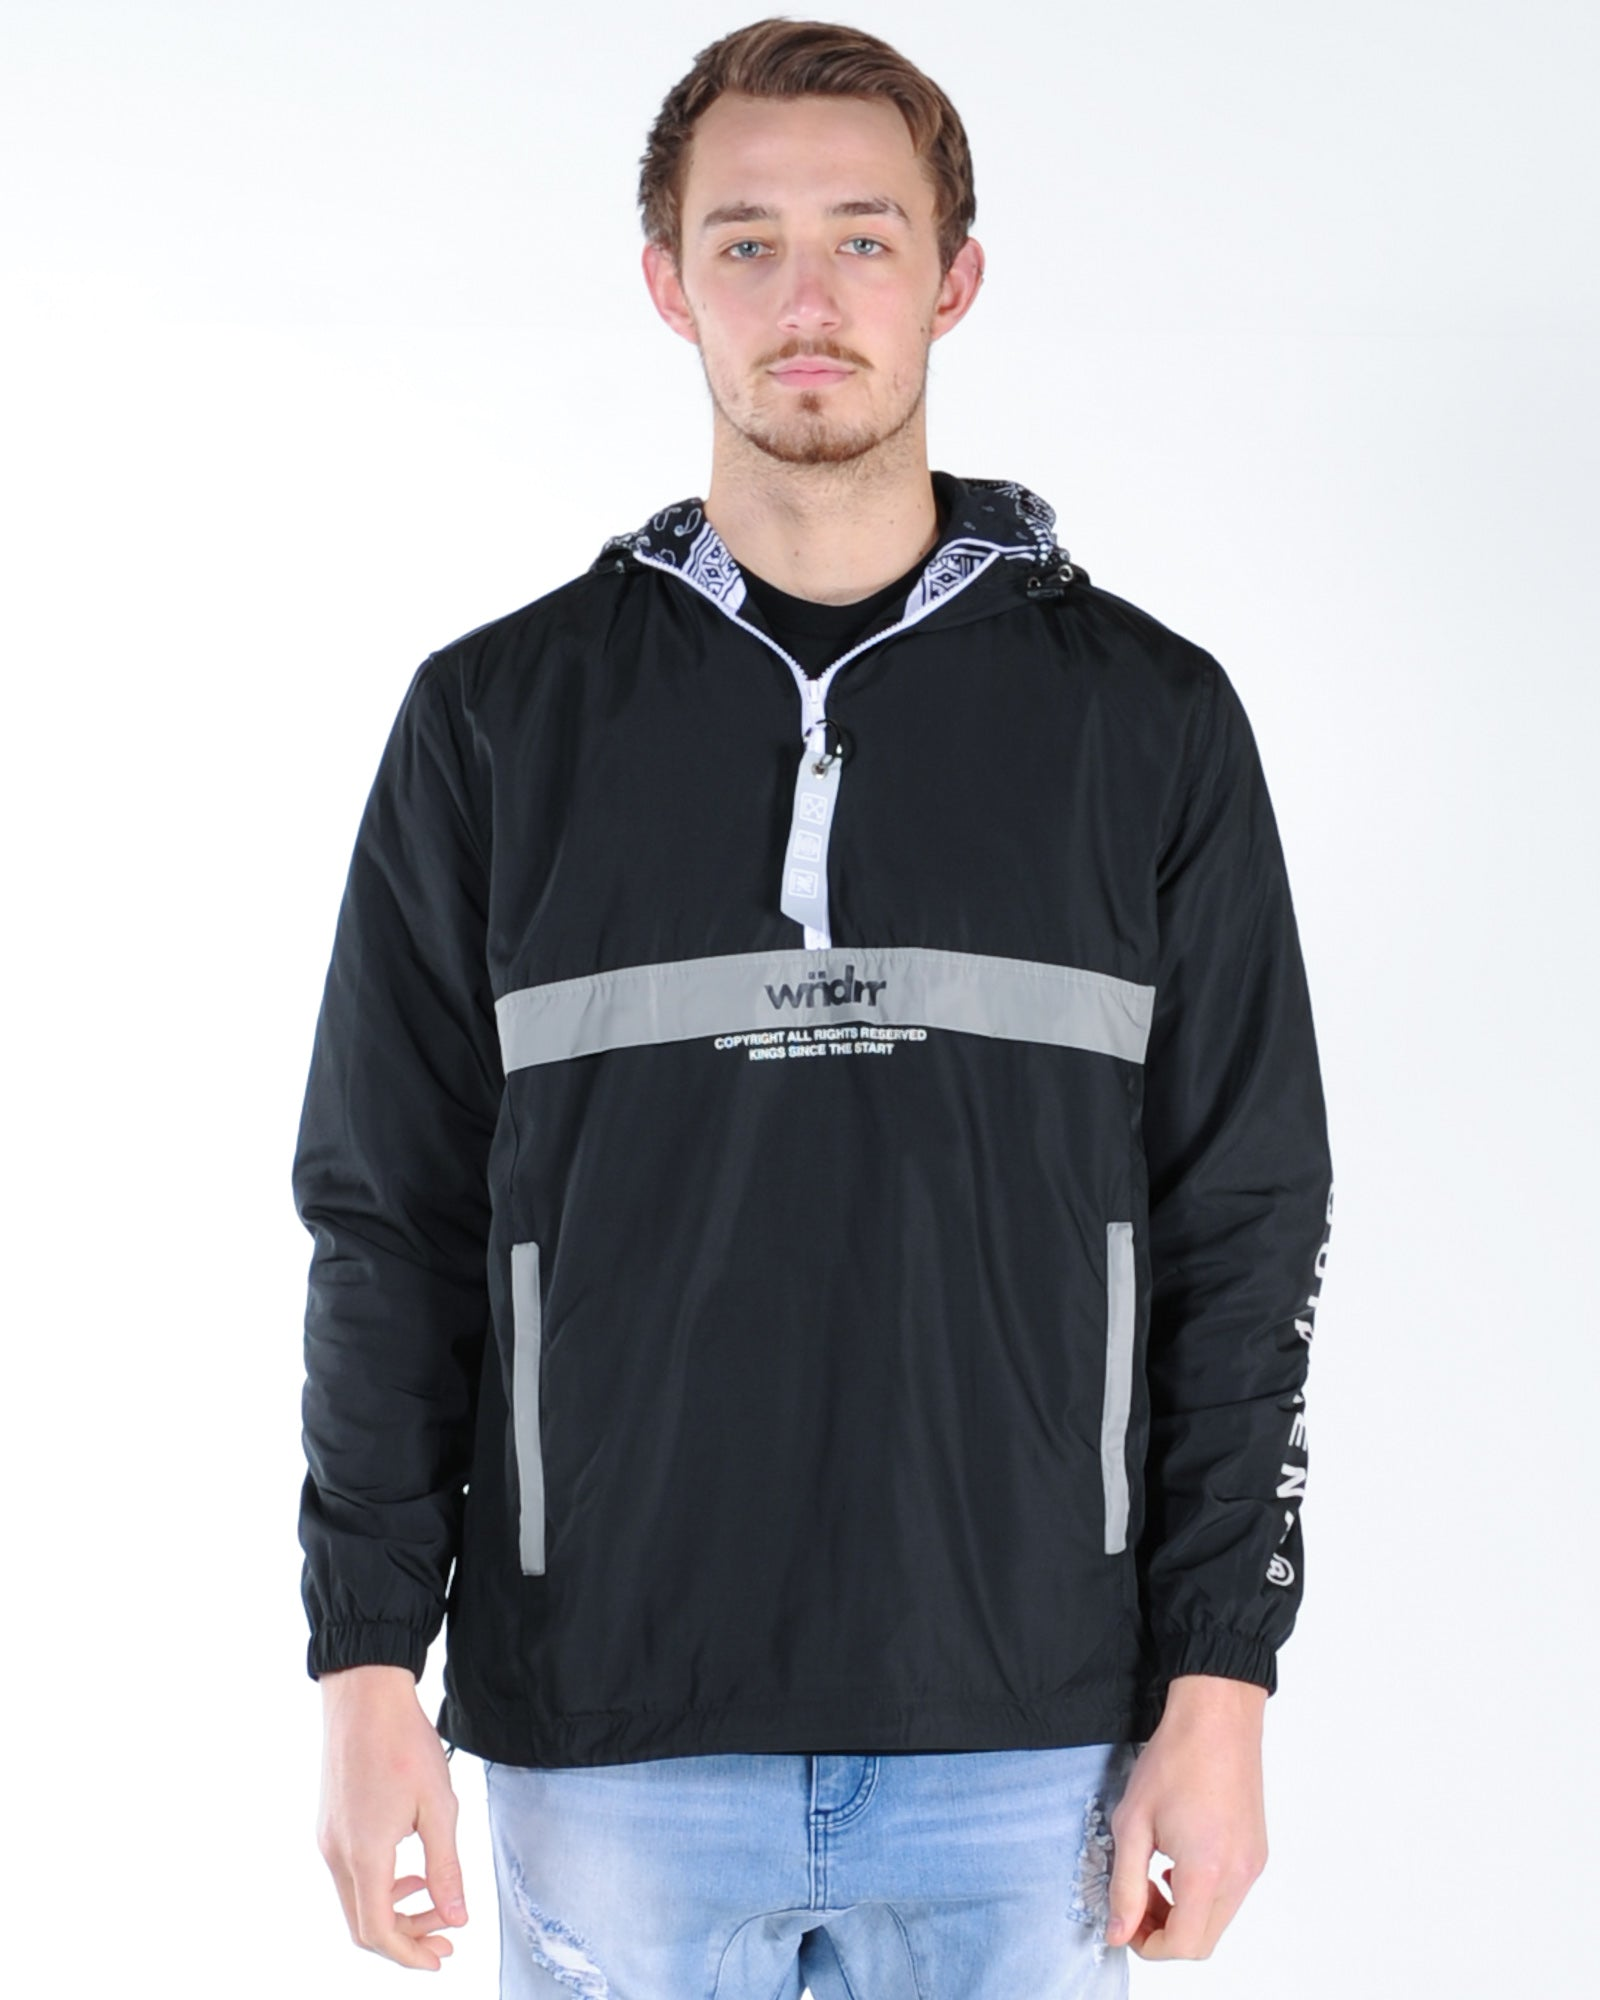 Wndrr Nonstop Spray Jacket - Black